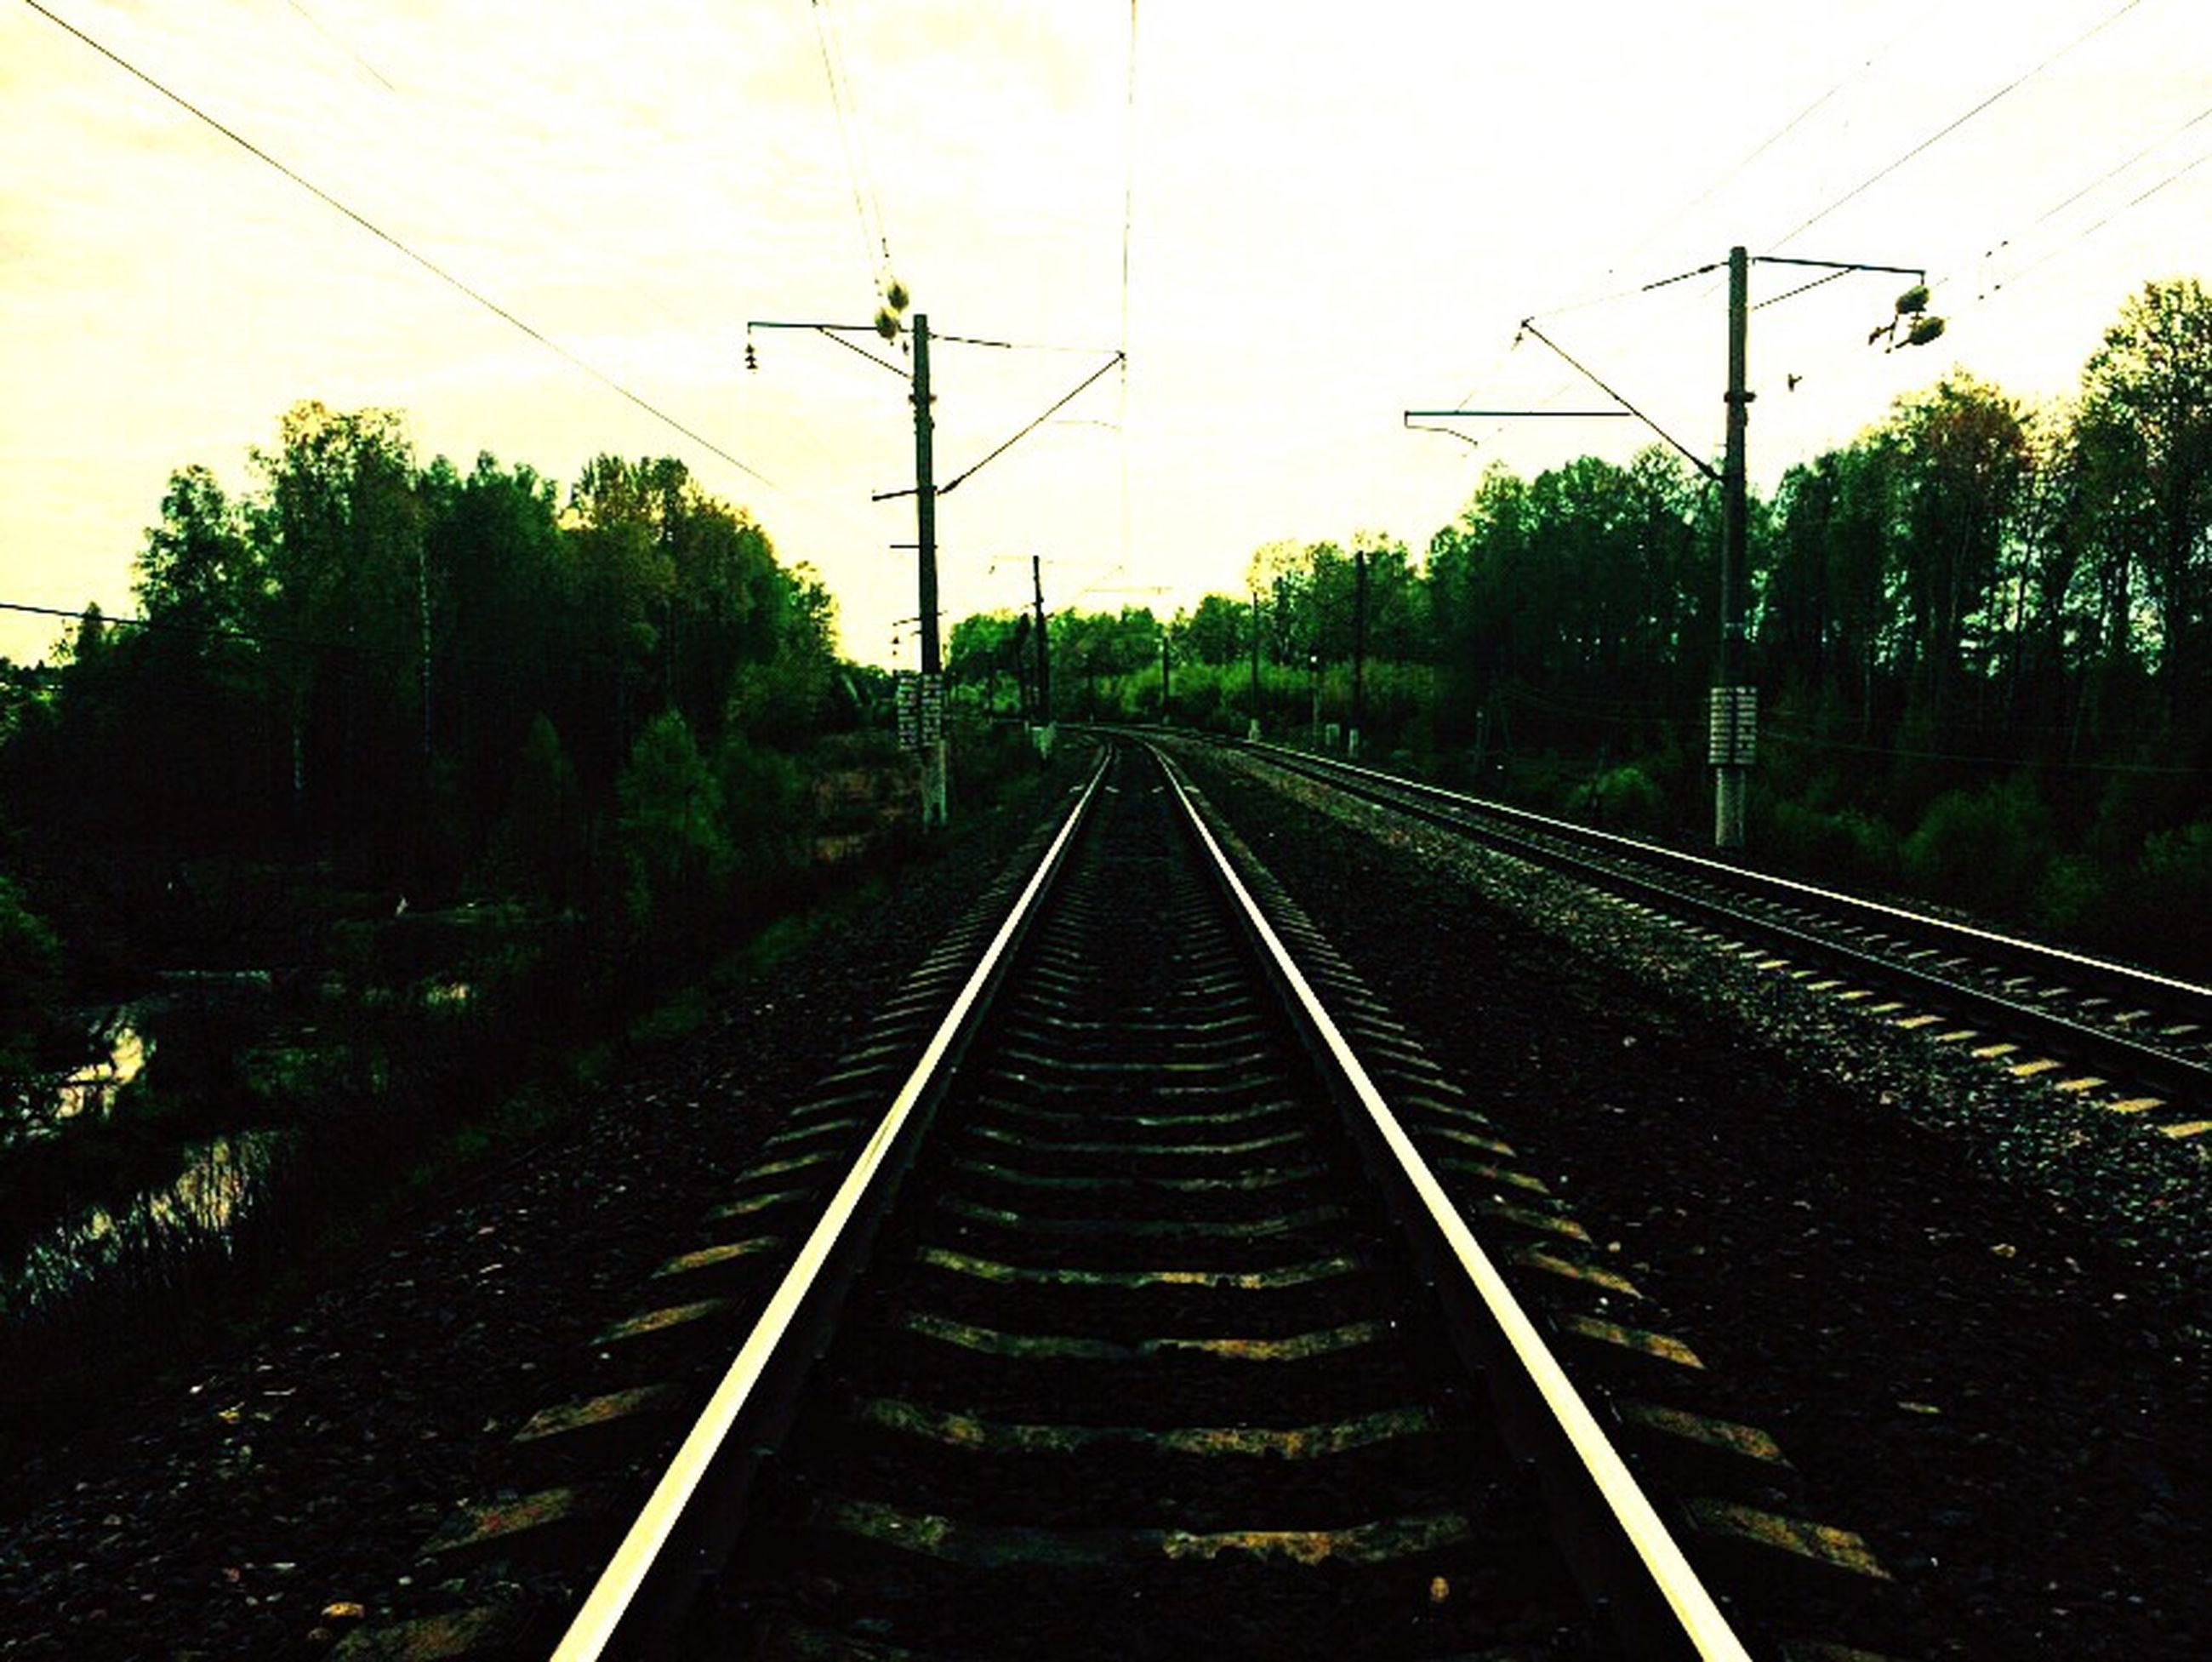 railroad track, the way forward, rail transportation, transportation, diminishing perspective, vanishing point, power line, tree, electricity pylon, railway track, sky, electricity, clear sky, long, straight, outdoors, no people, public transportation, nature, growth